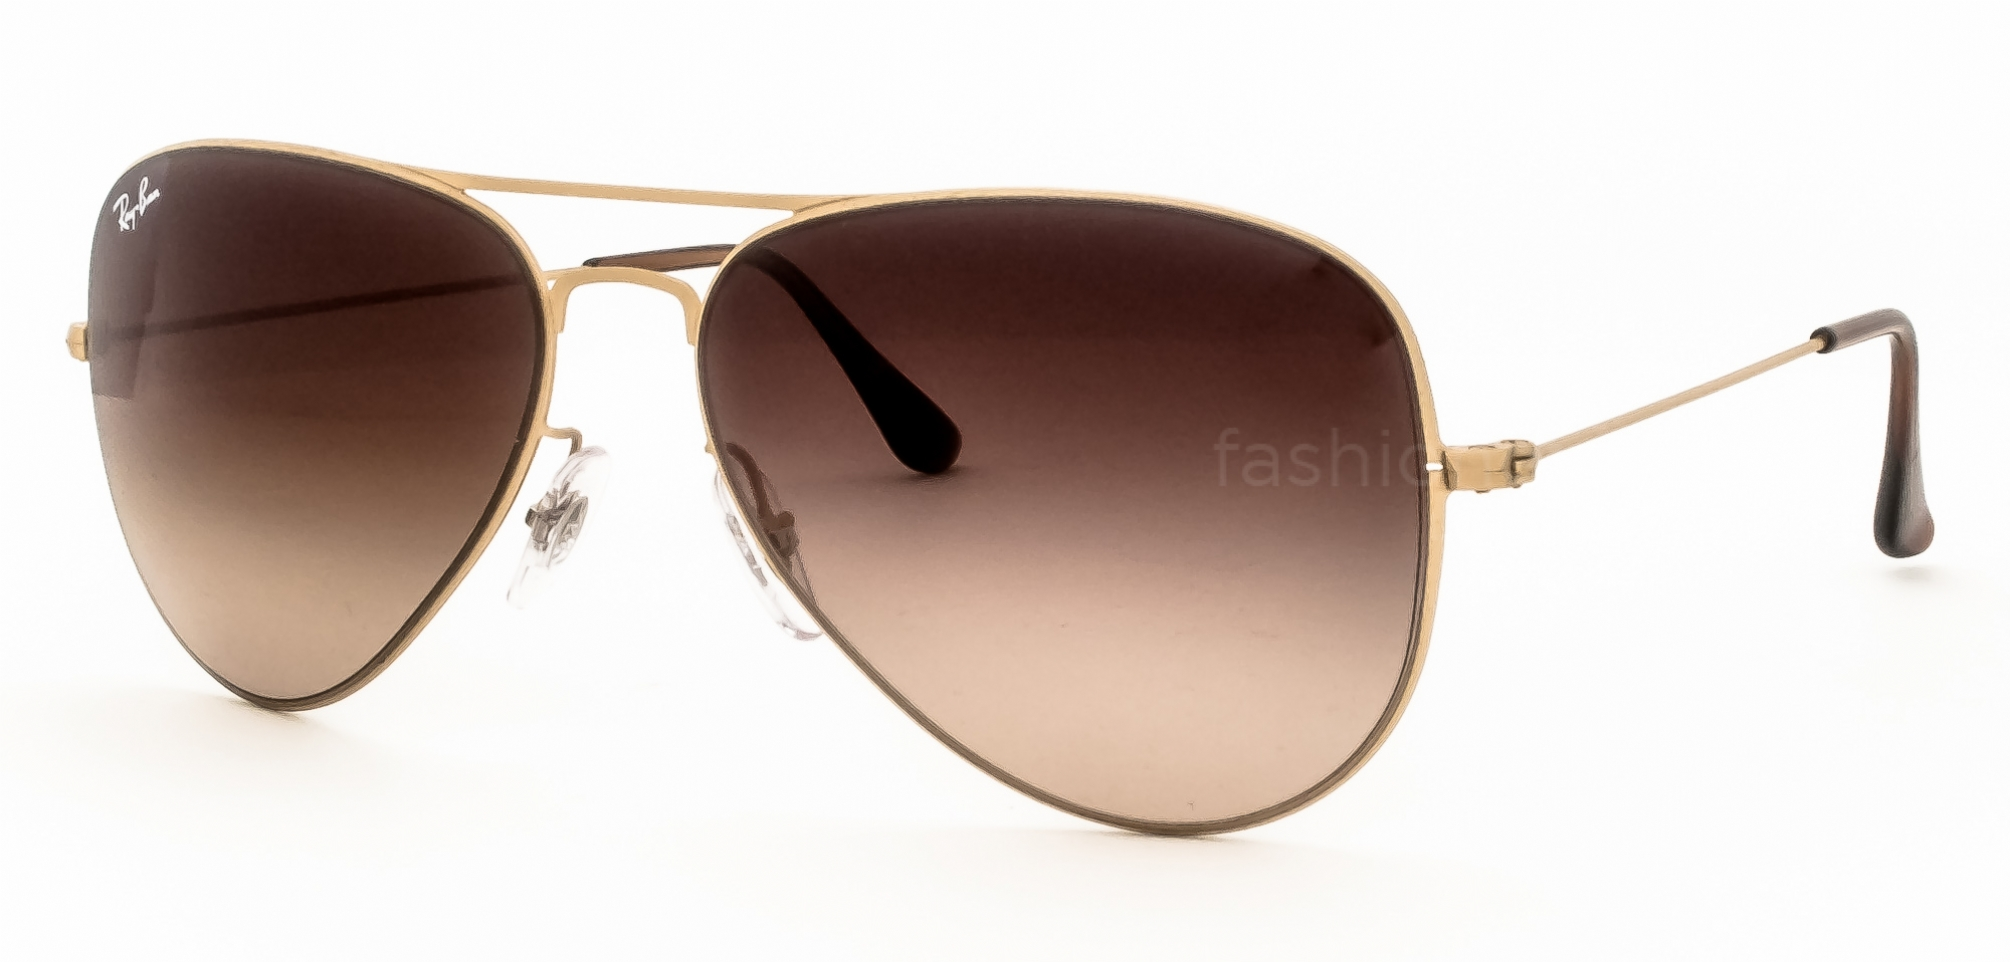 B l Ray Ban Made In Italy   City of Kenmore, Washington 630c96a14f27